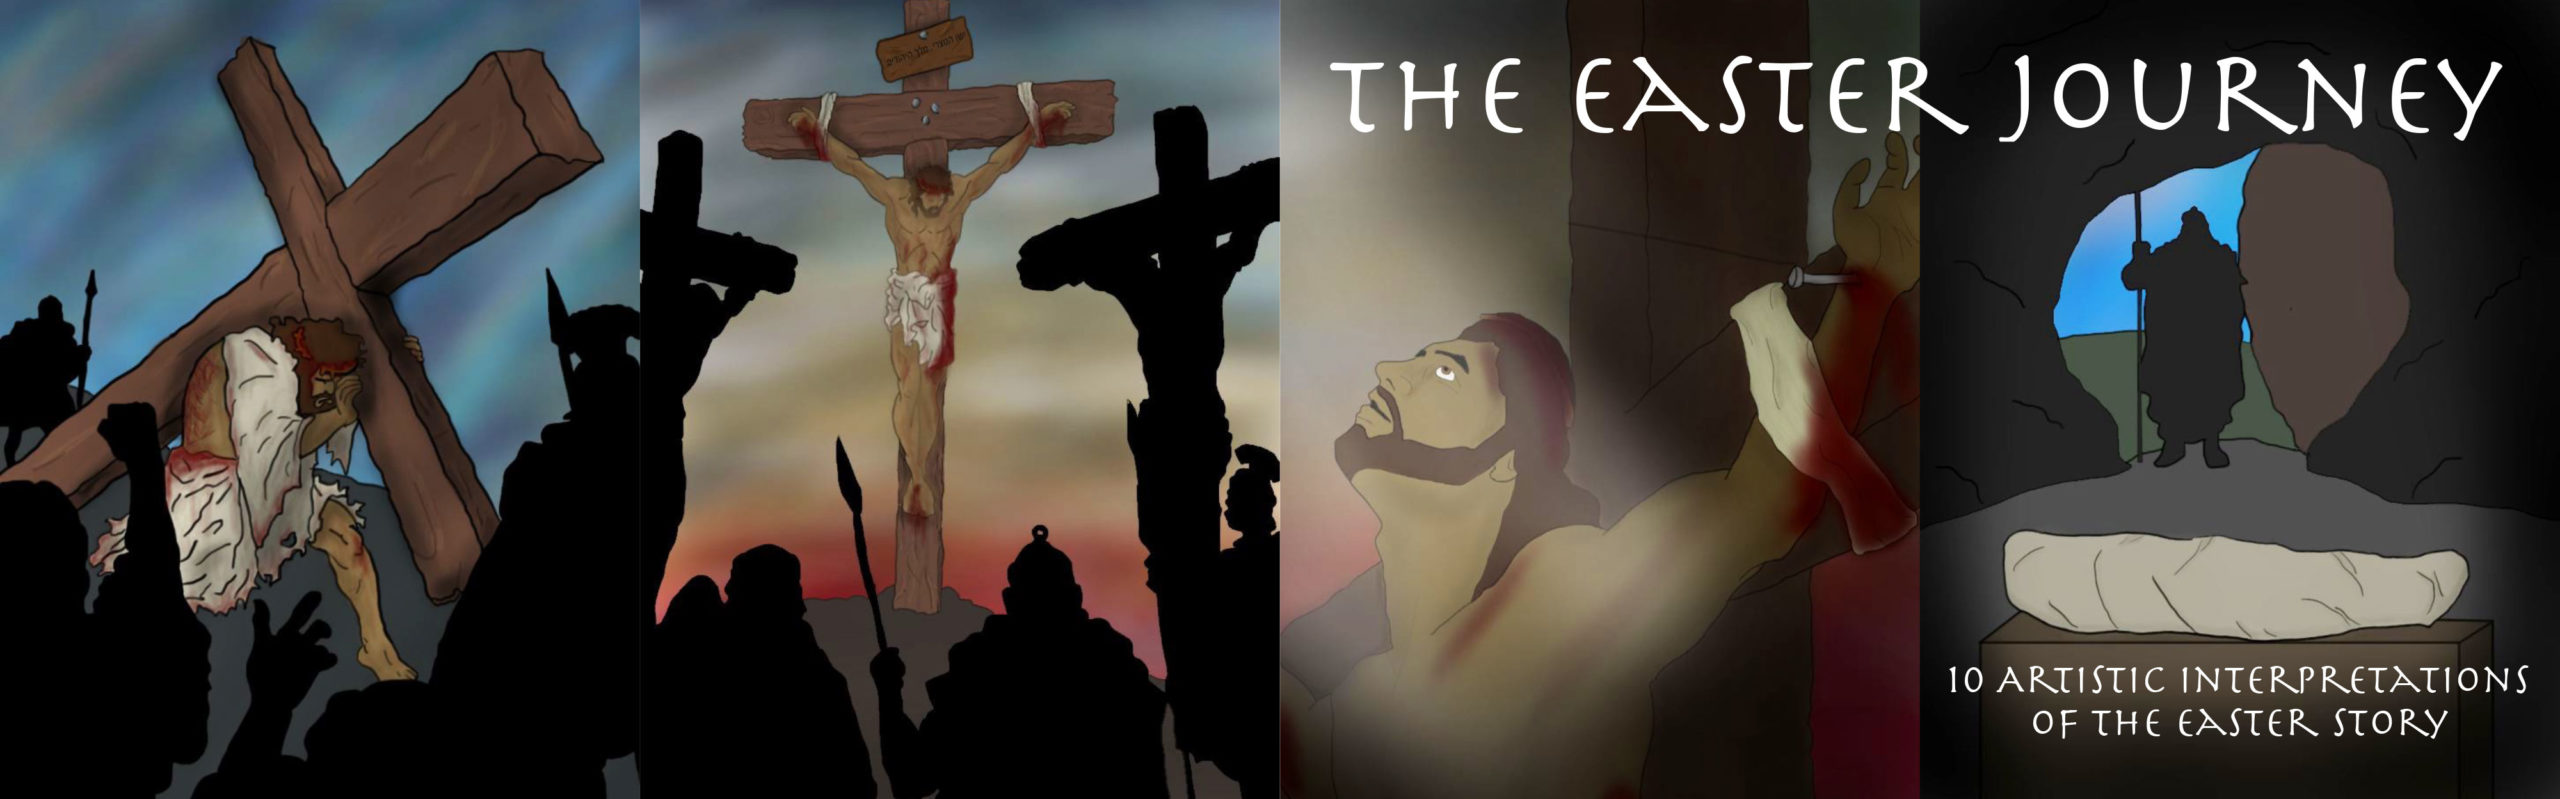 The Easter Journey: 10 artistic Interpretations of the Easter story